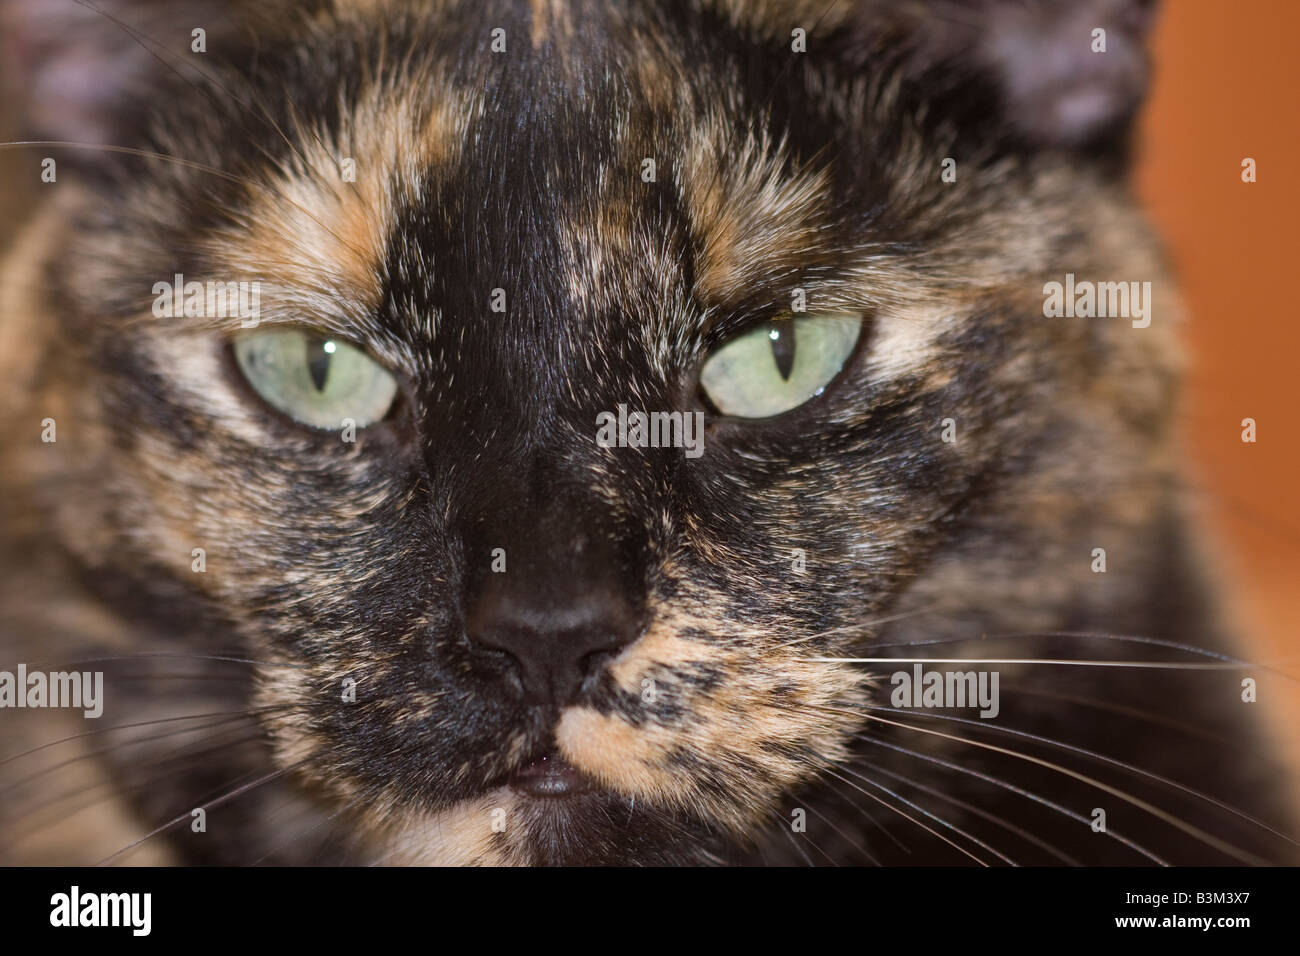 Close up of female Tortoiseshell or Brindle cat looking directly at the camera - Stock Image